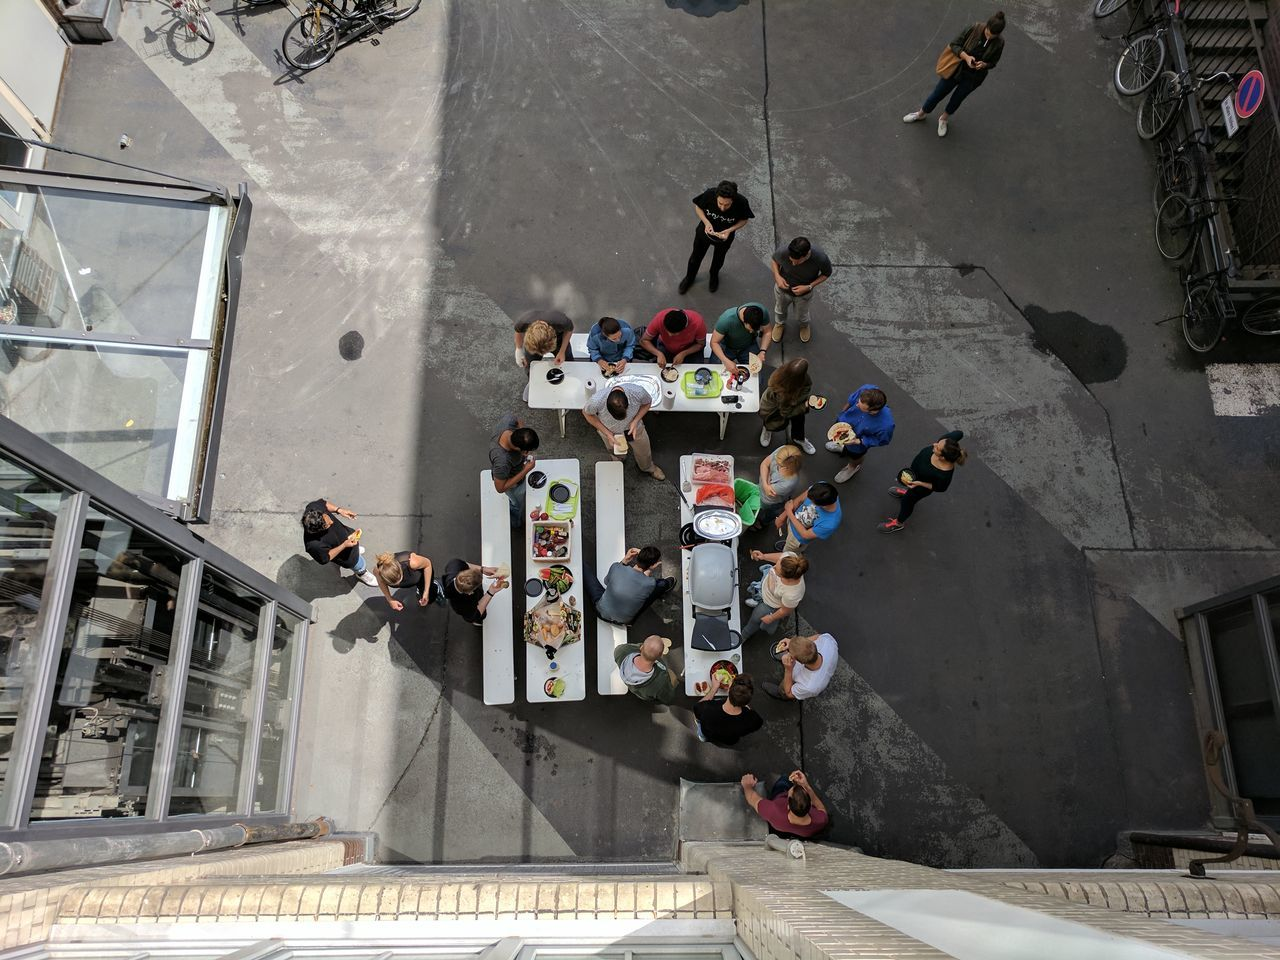 BBQ - The Leftovers! //Real People Large Group Of People Men Women High Angle View Architecture Looking From Above Leisure Activity Built Structure Togetherness Outdoors People Lift Bike Standing Google Pixel F/2.0 ISO 50 via Fotofall